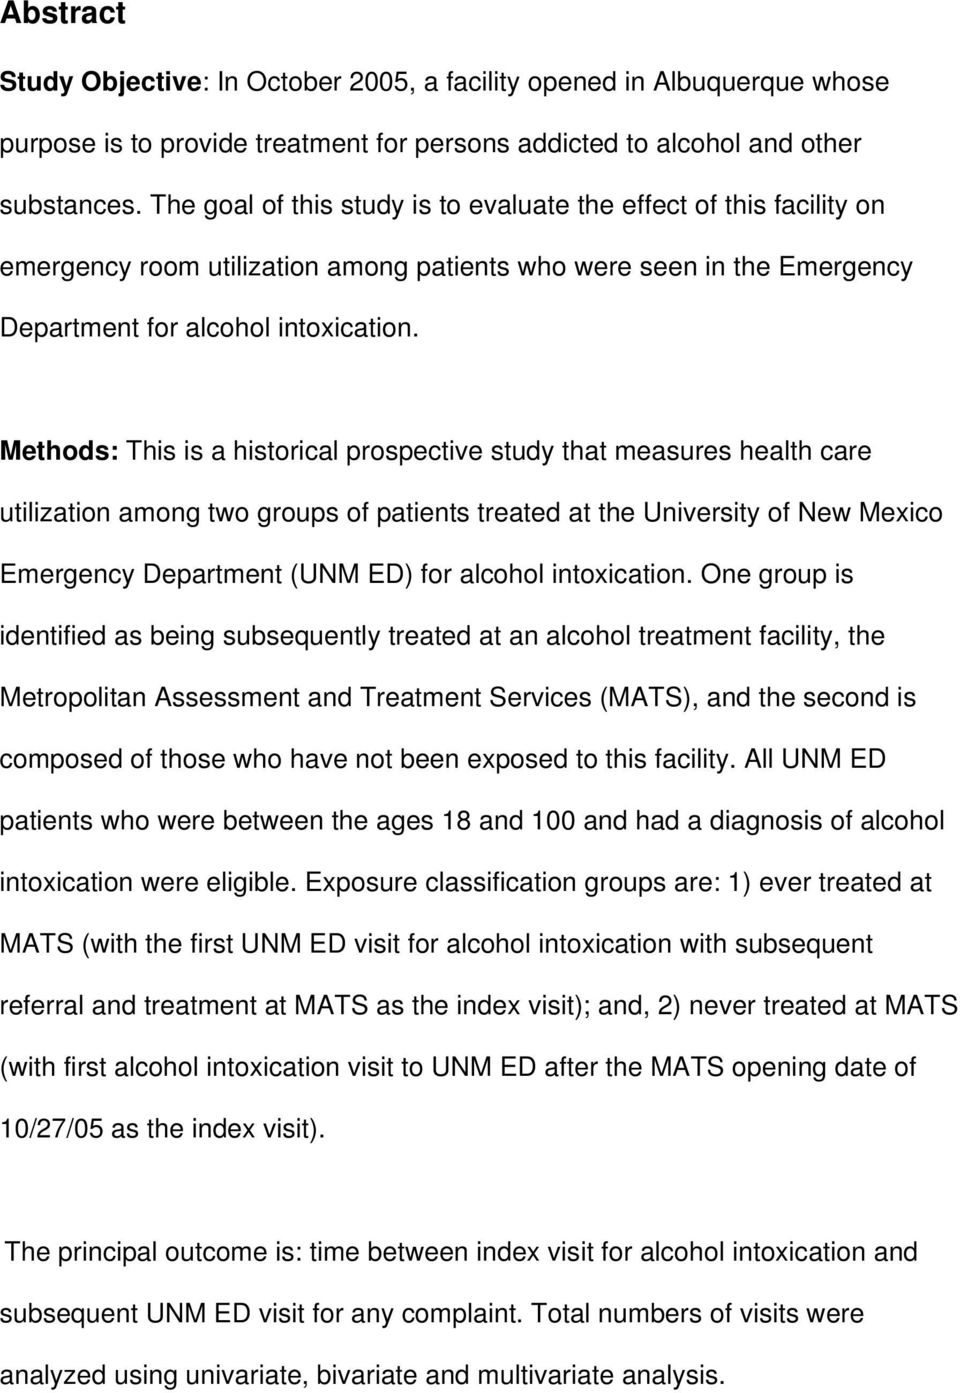 Methods: This is a historical prospective study that measures health care utilization among two groups of patients treated at the University of New Mexico Emergency Department (UNM ED) for alcohol